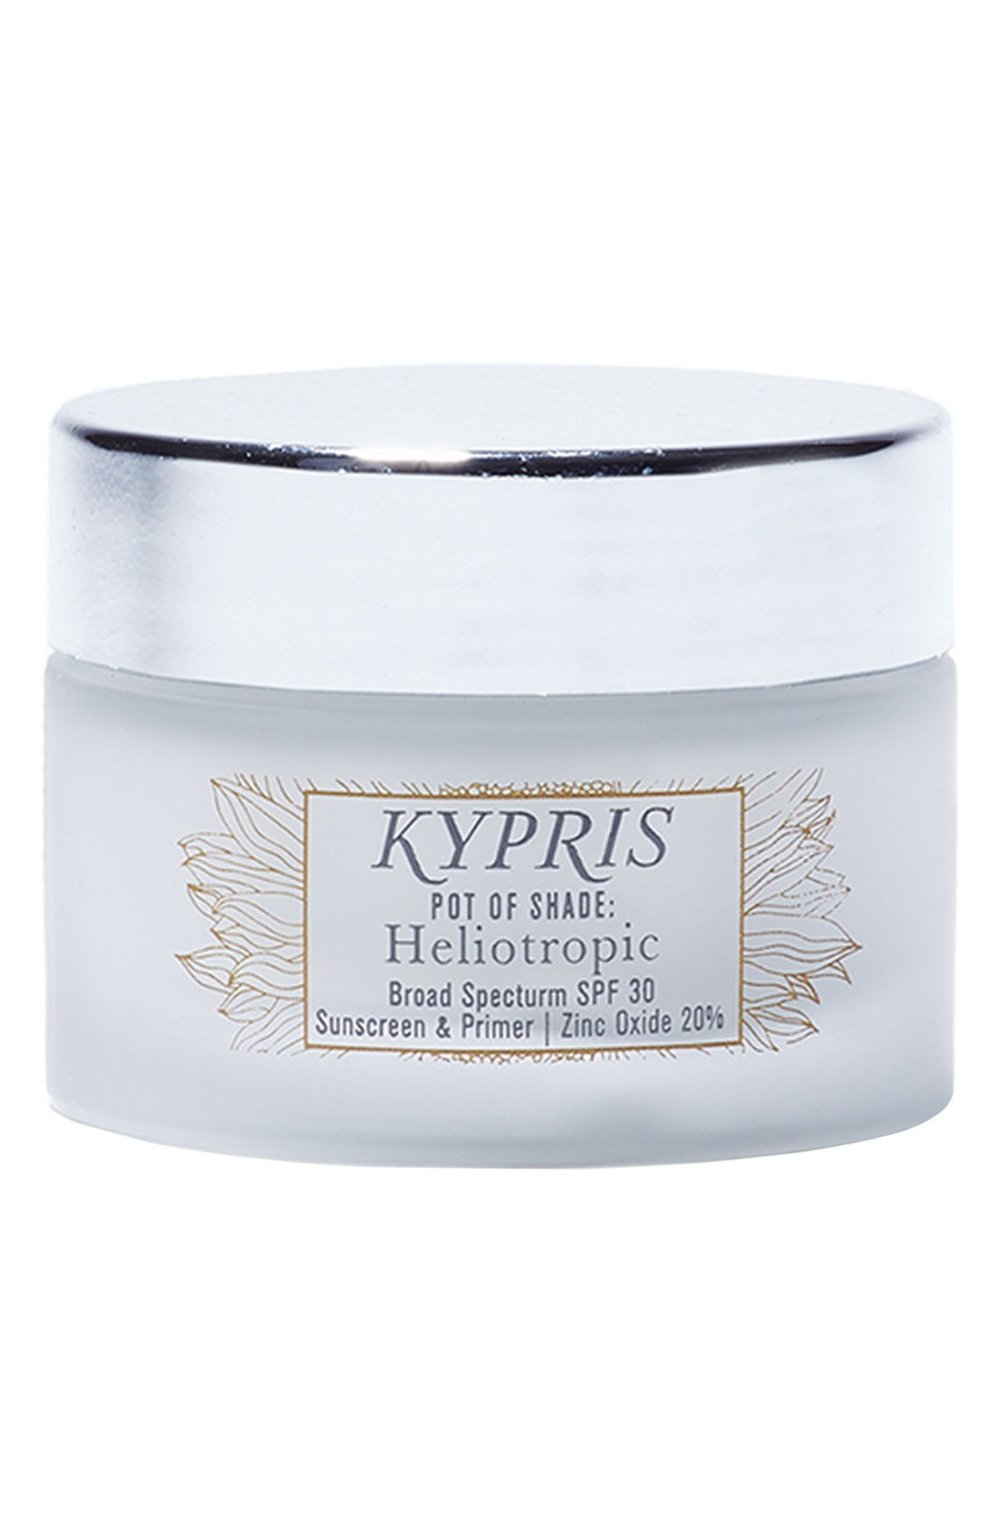 Kypris Pot of Shade:  Heliotropic Primer and Sunscreen